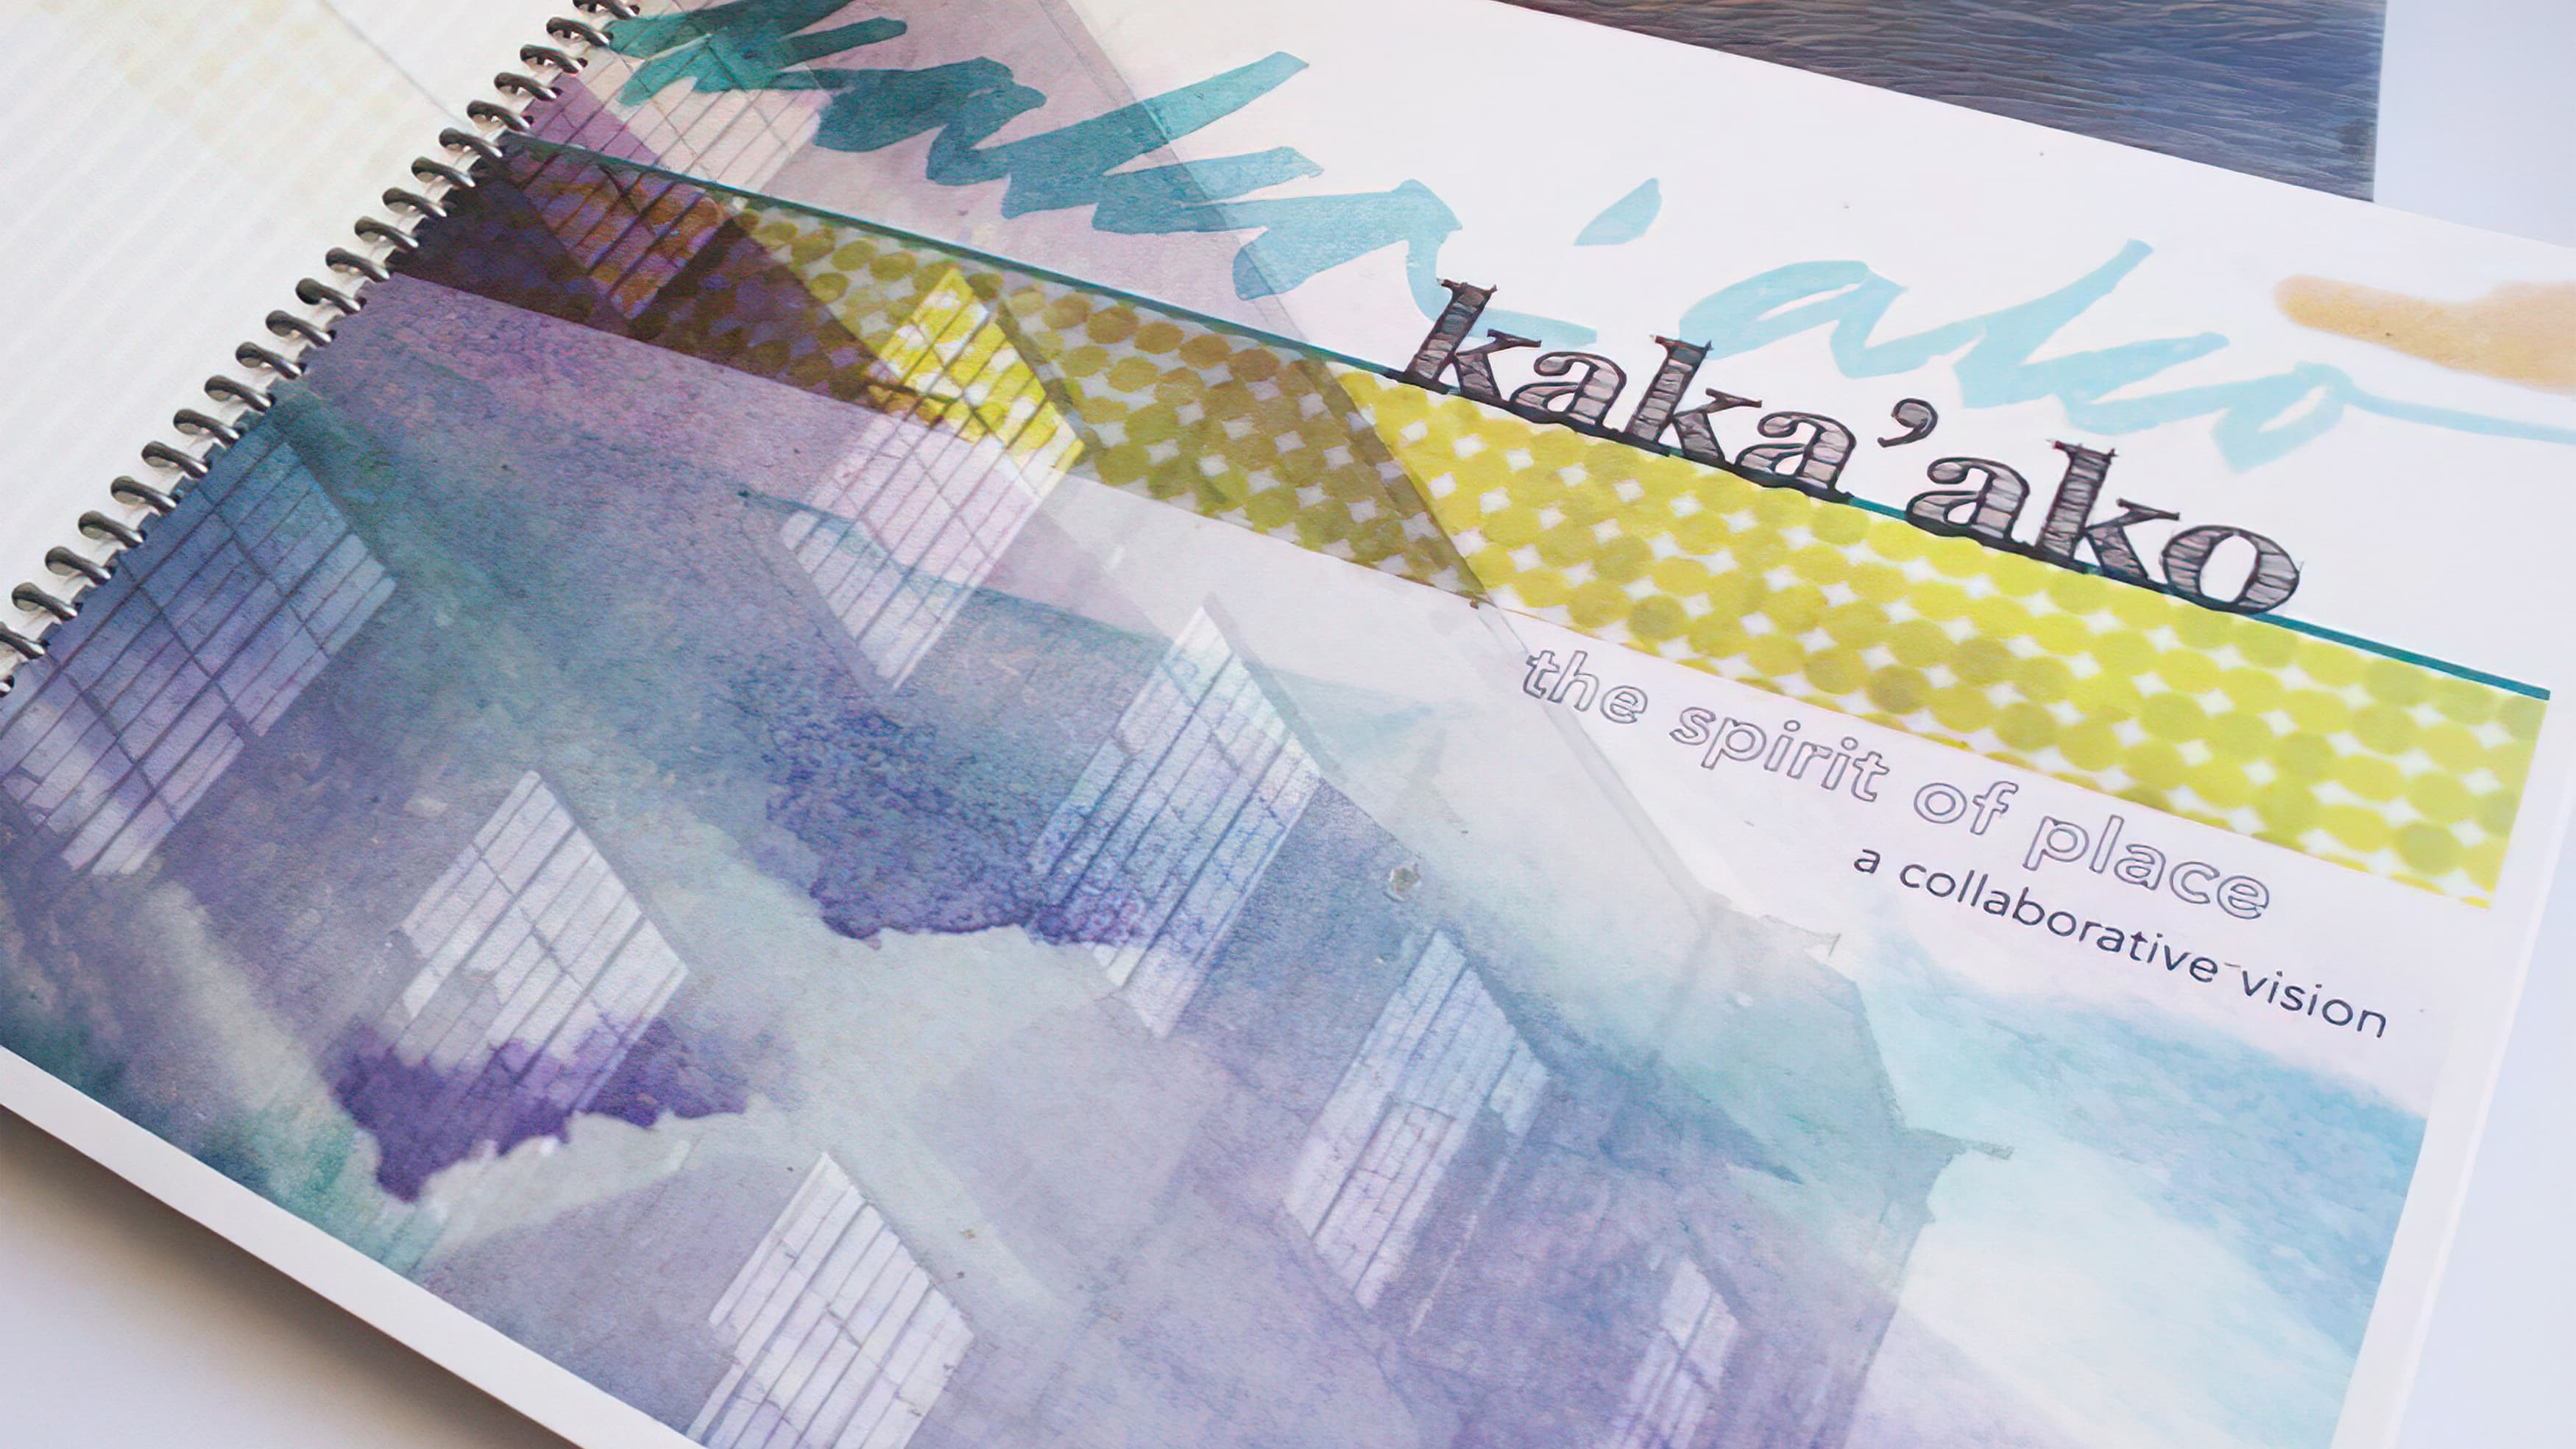 Kaka'ako brand positioning bookley with watercolor-style artwork